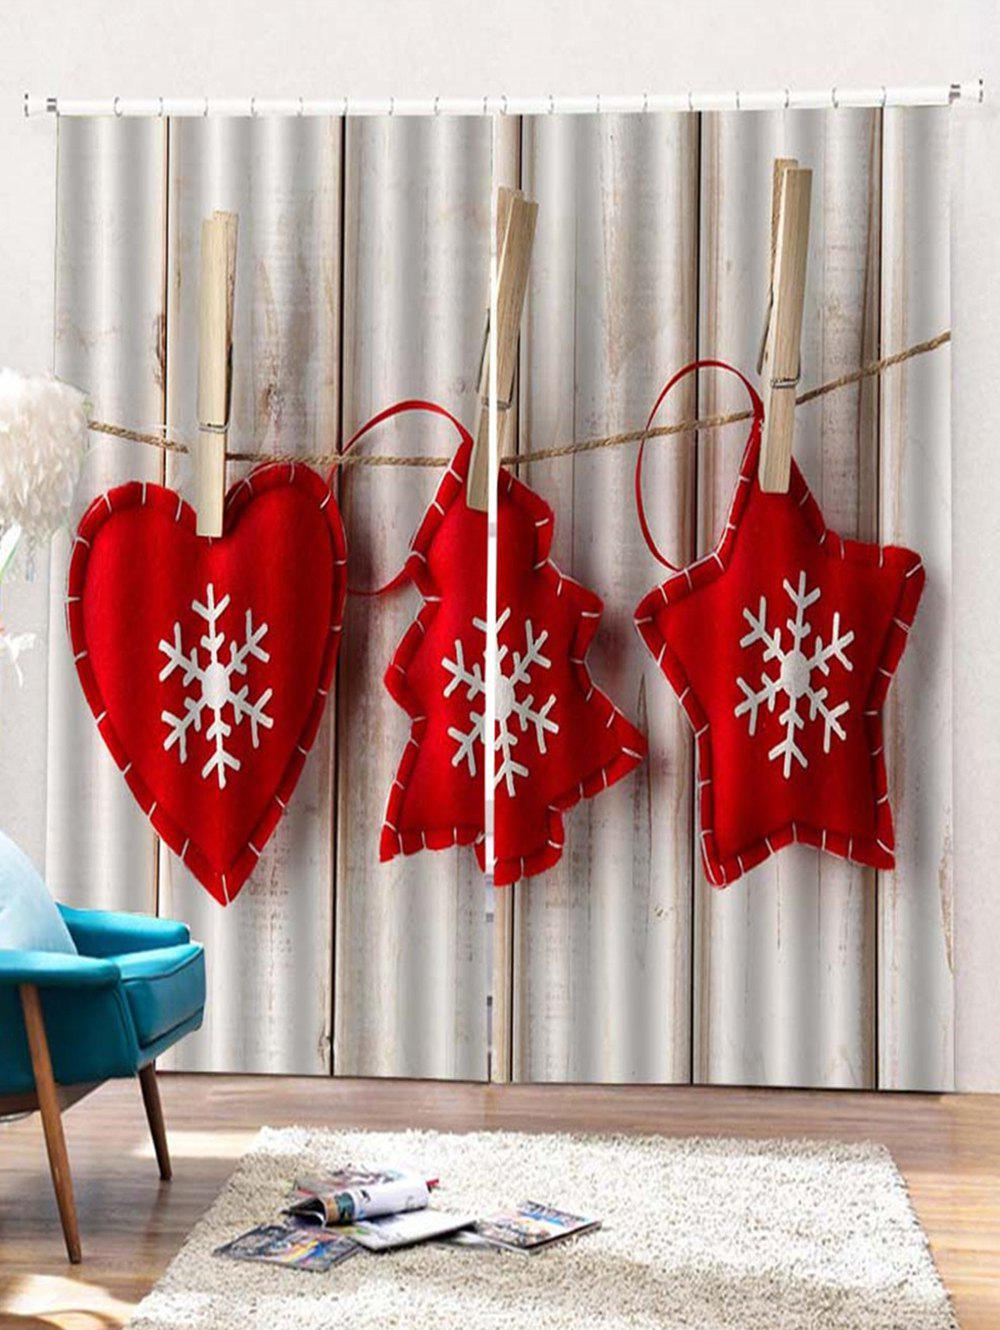 New 2PCS Christmas Snowflake Wooden Pattern Window Curtains